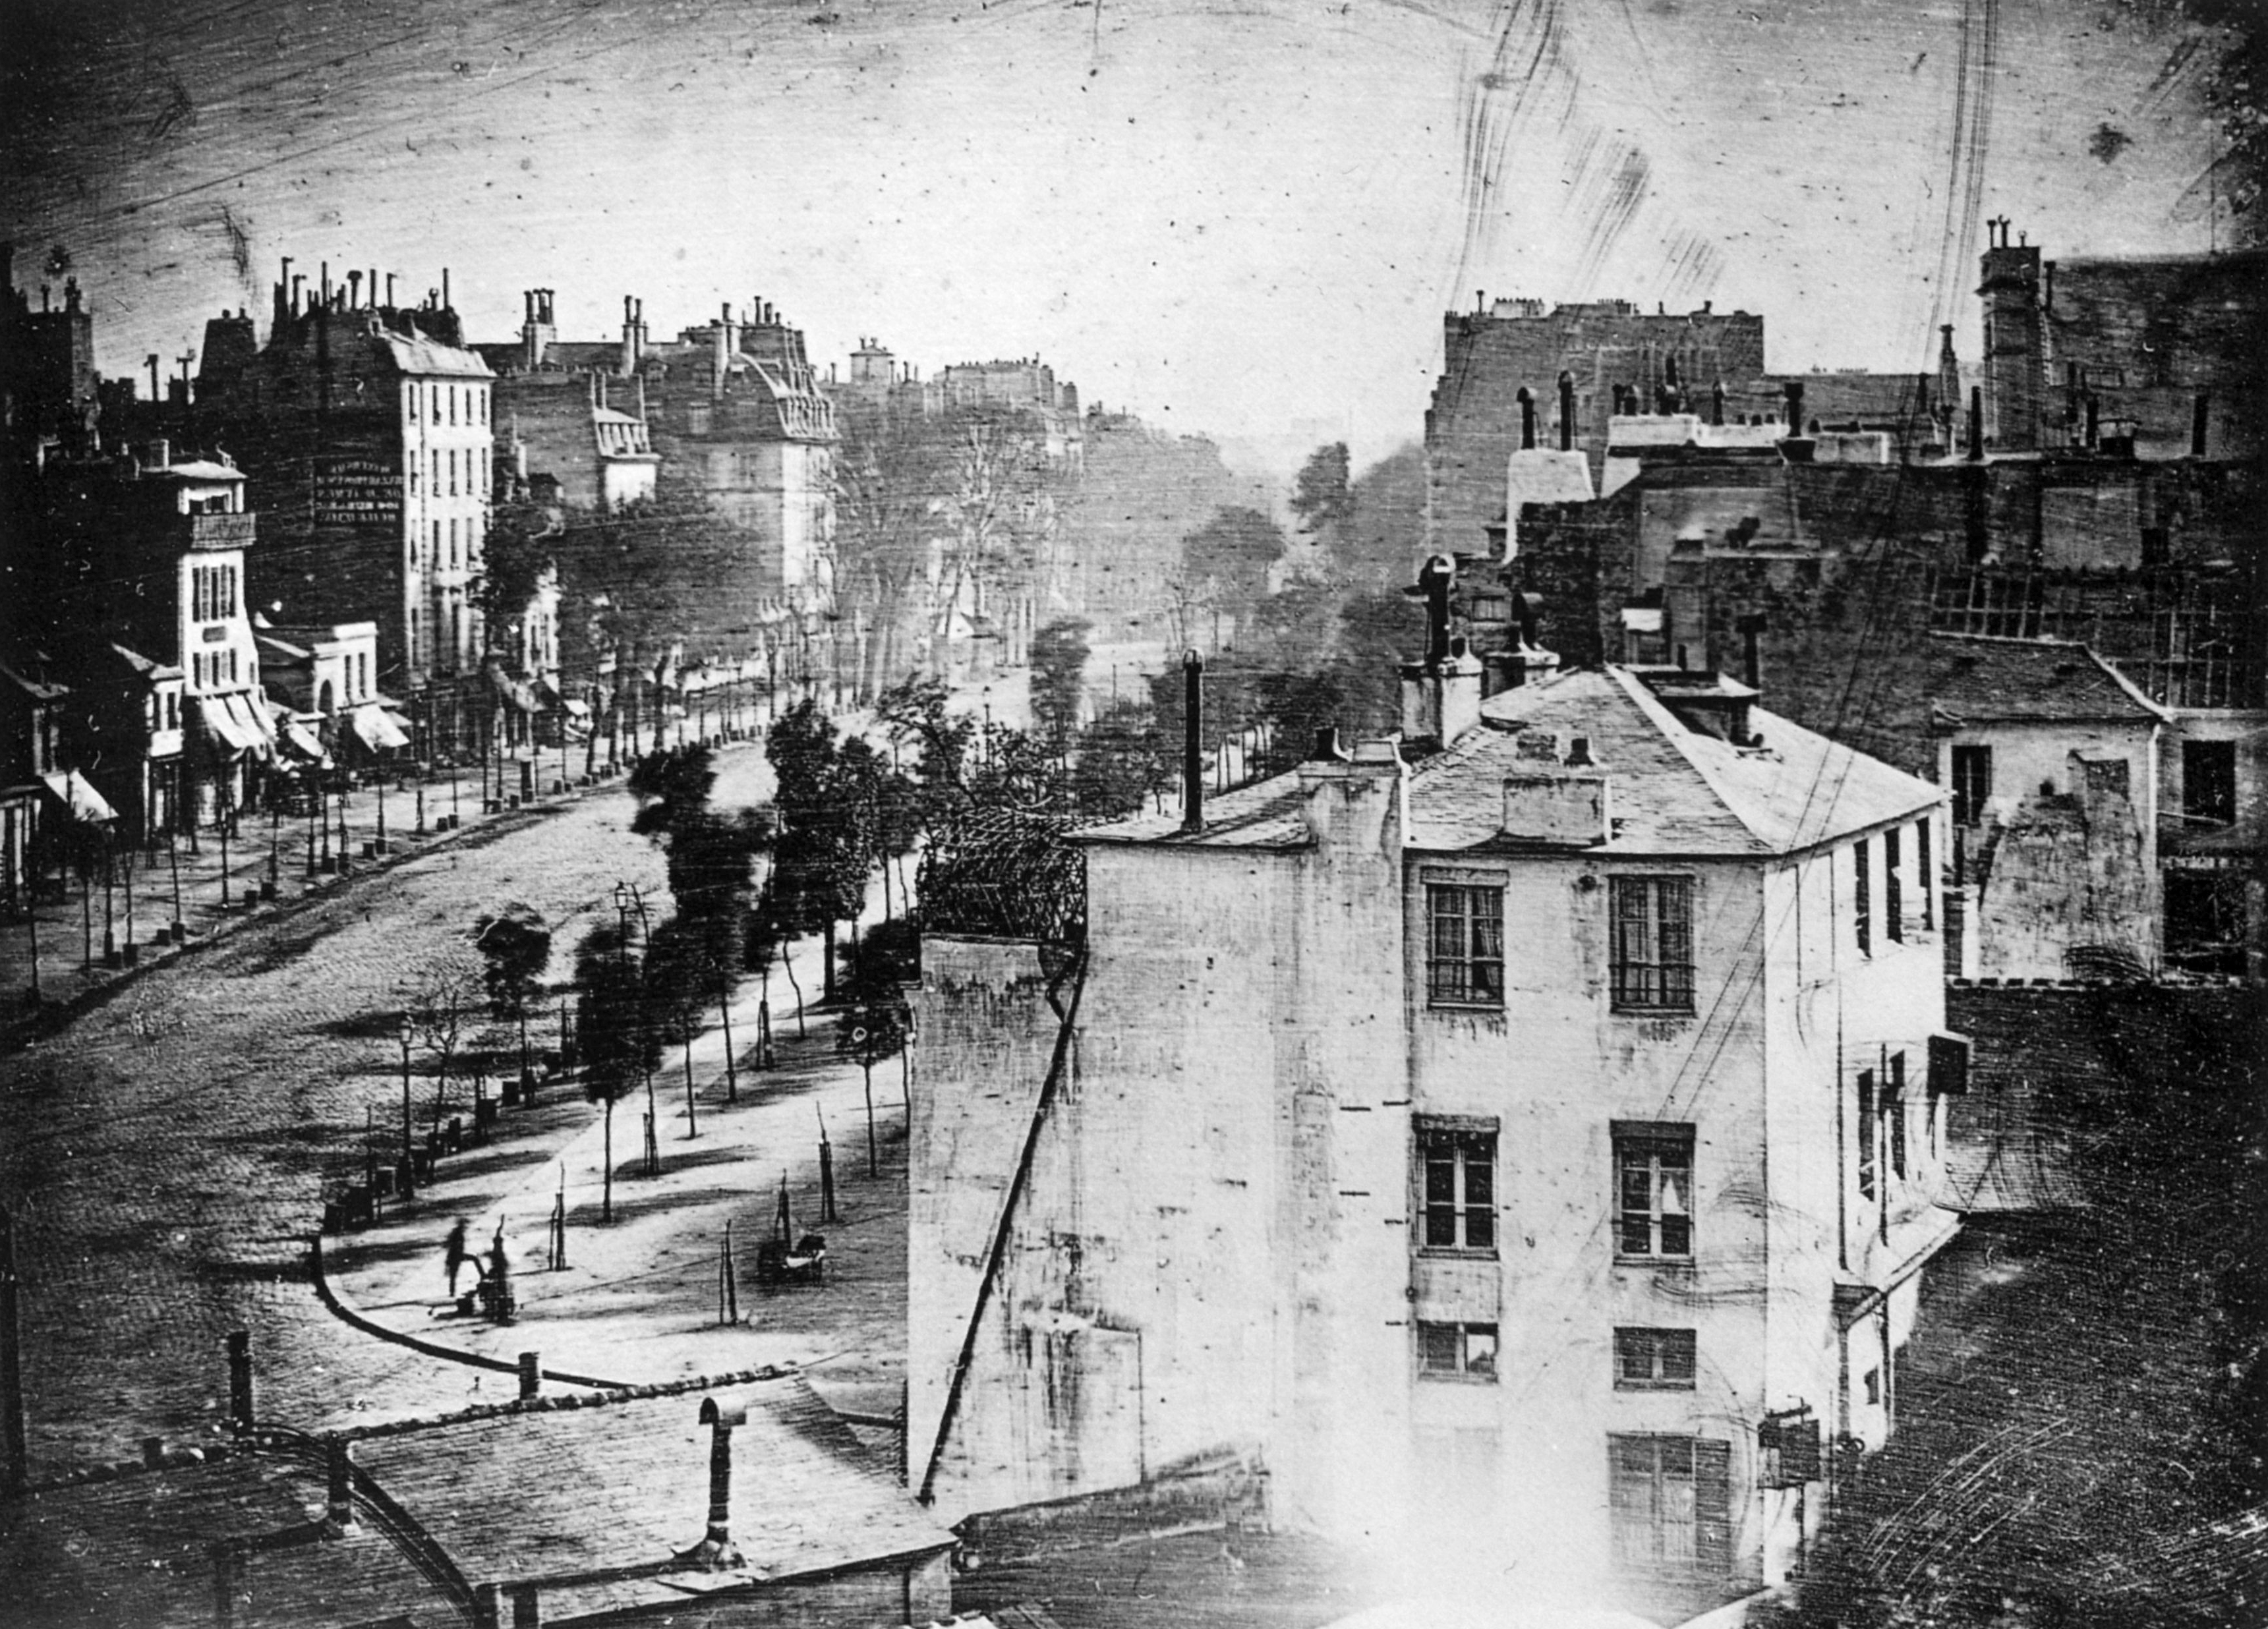 Made in 1838 by inventor Louis Daguerre, this is believed to be the earliest photograph showing a living person. It is a view of a busy street, but because the exposure lasted for several minutes the moving traffic left no trace. Only the two men near the bottom left corner, one apparently having his boots polished by the other, stayed in one place long enough to be visible.